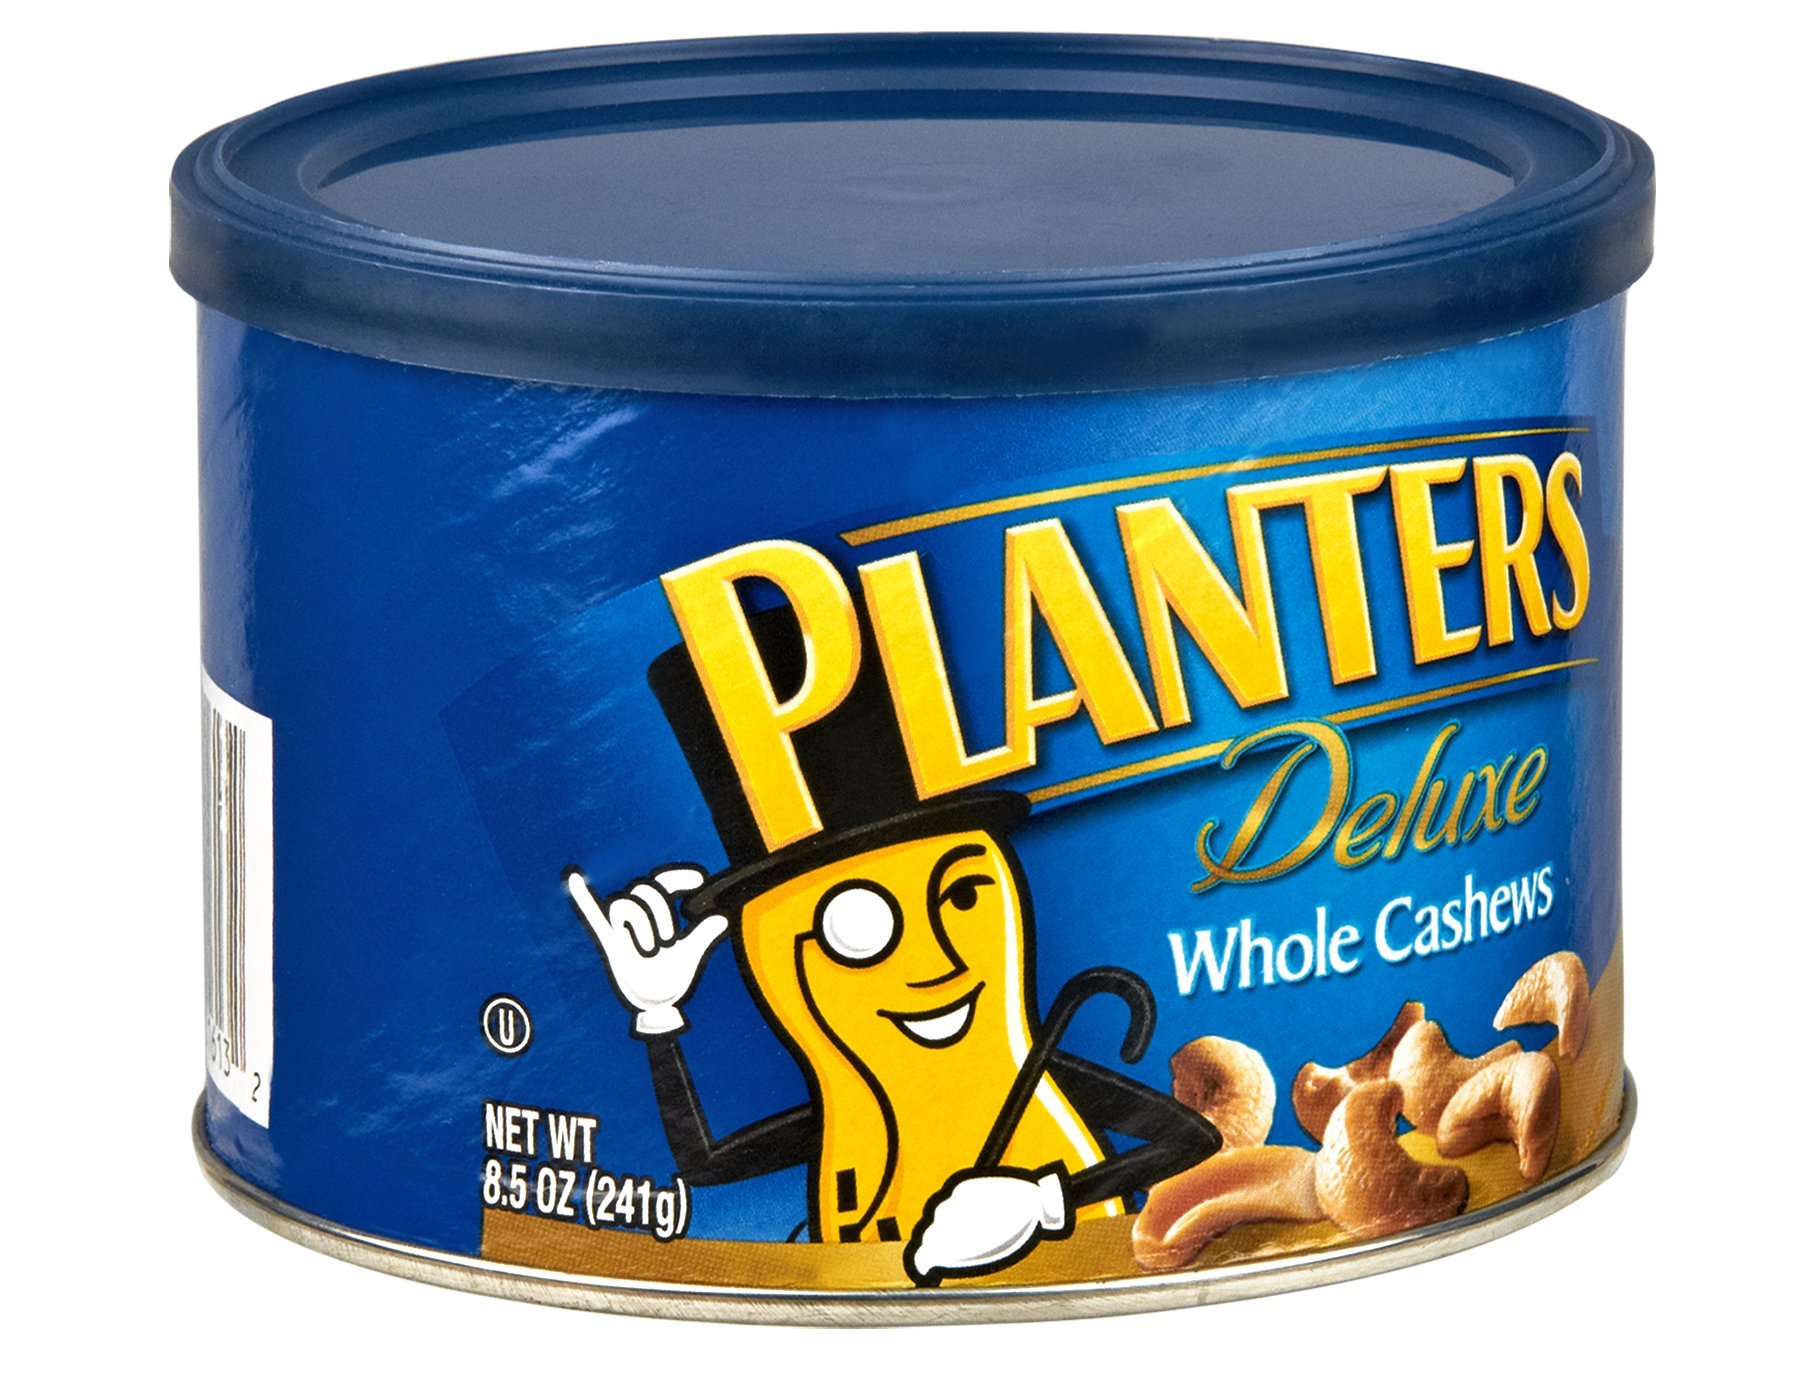 Planters Deluxe Whole Cashew, 8.5 Ounce -- 12 per case.